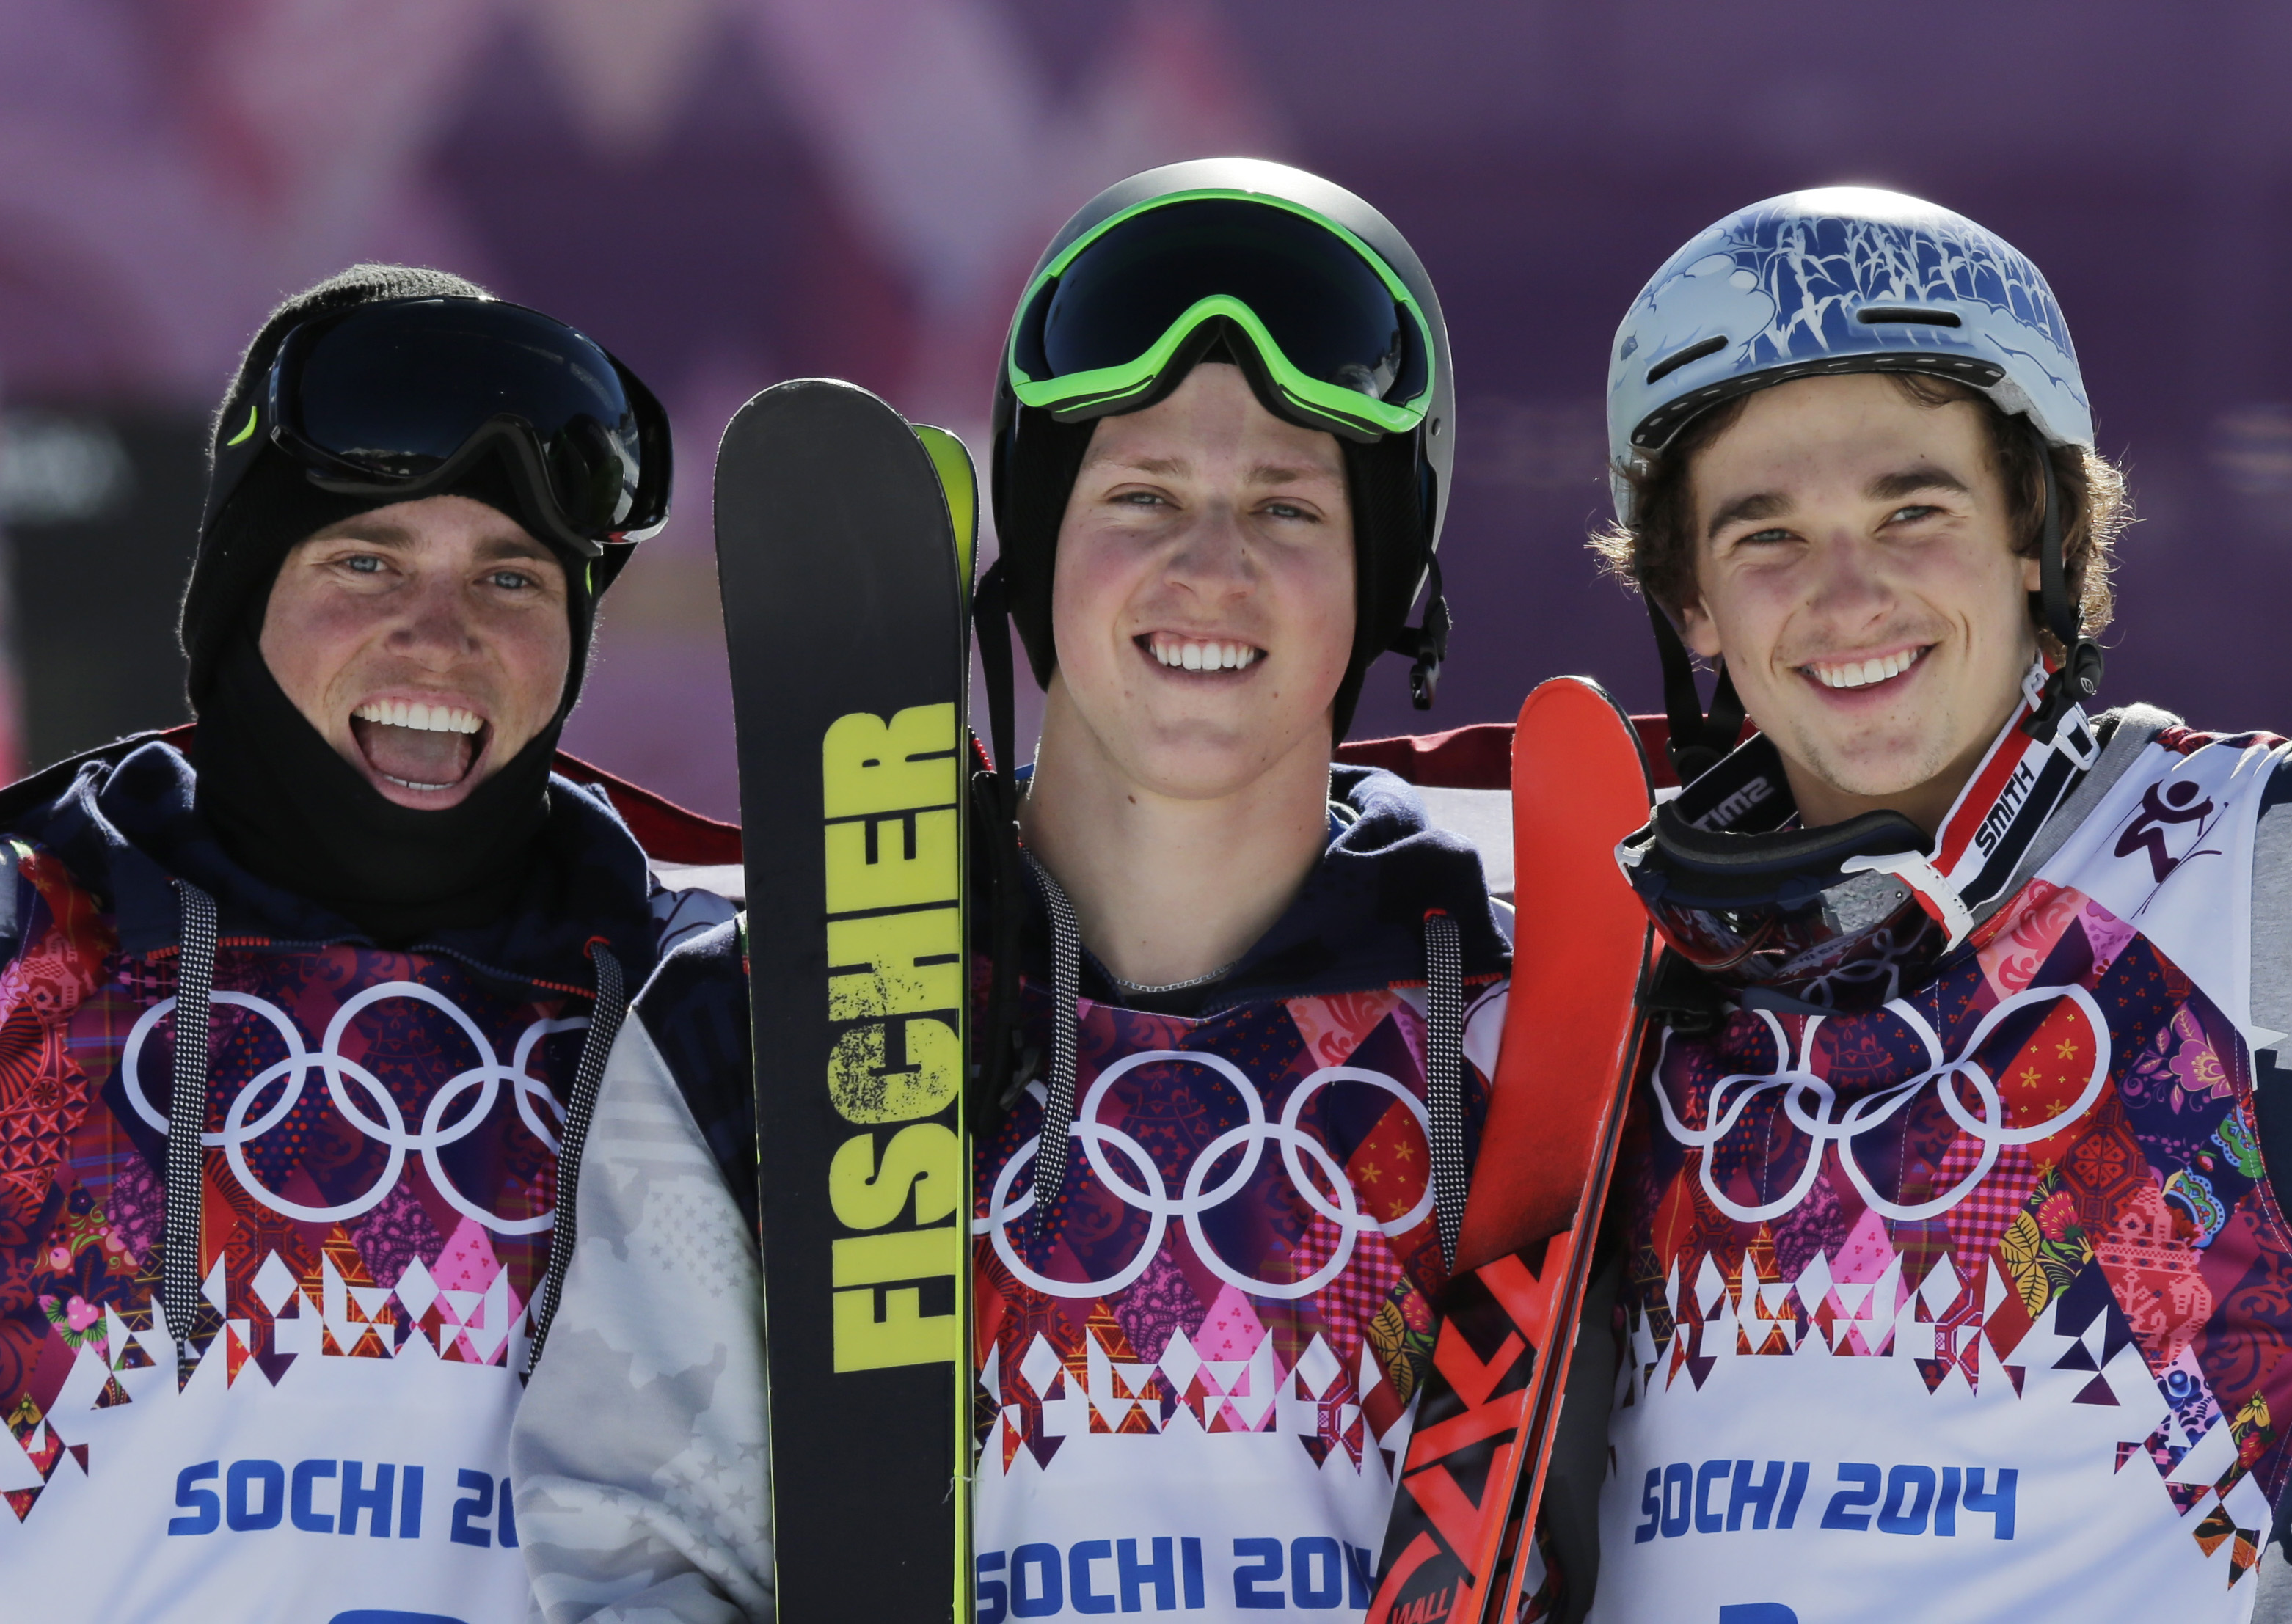 Men's ski slopestyle gold medal winner Joss Christensen of the United States, center, celebrates on the podium with his teammates Gus Kenworthy, left, silver, and Nicholas Goepper, bronze, right, during a flower ceremony at the Rosa Khutor Extreme Park, at the 2014 Winter Olympics, Thursday, Feb. 13, 2014, in Krasnaya Polyana, Russia.  (AP Photo/Andy Wong)